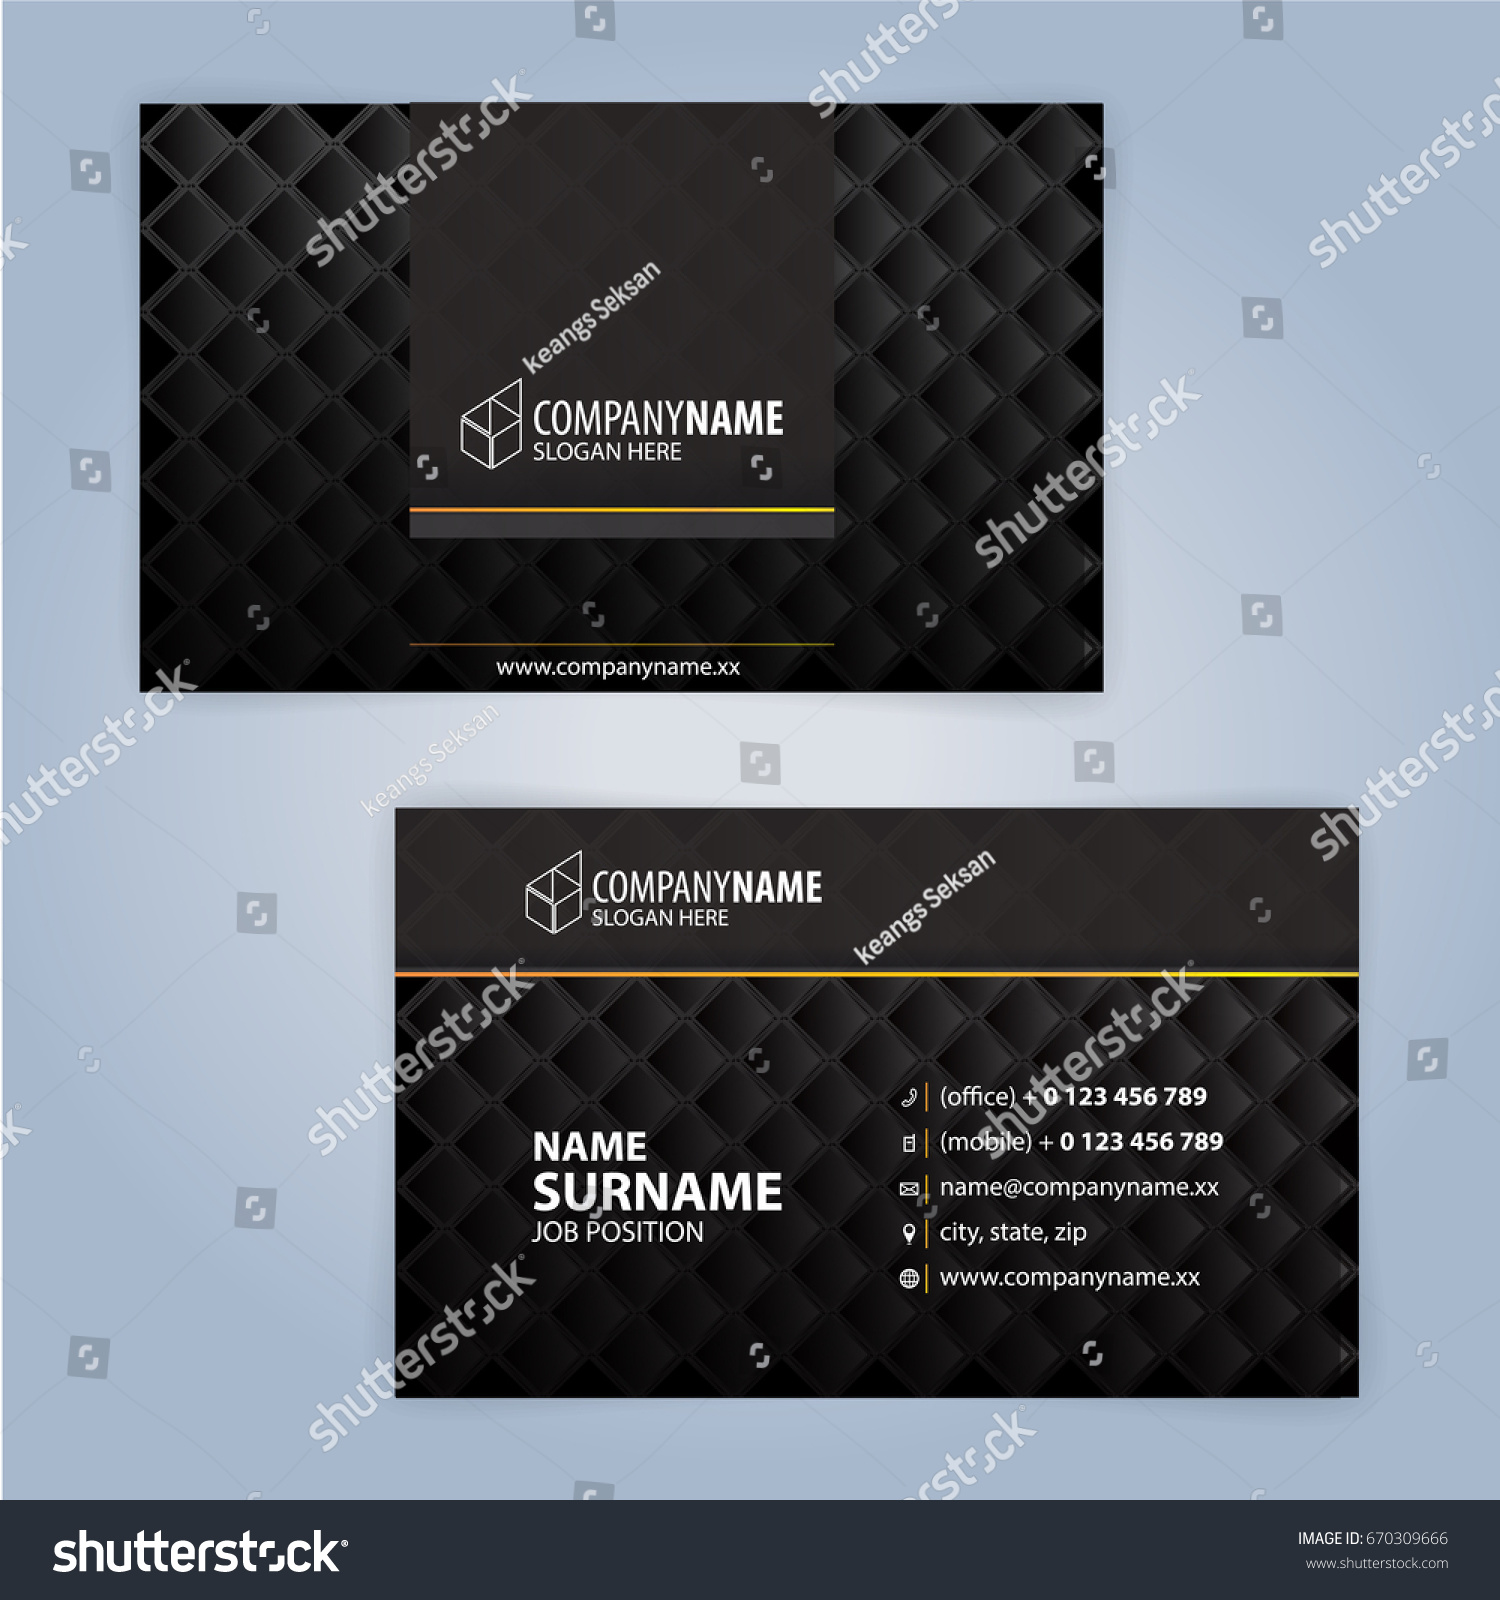 Business card design templates luxury graphic stock vector 2018 business card design templates luxury graphic design reheart Image collections